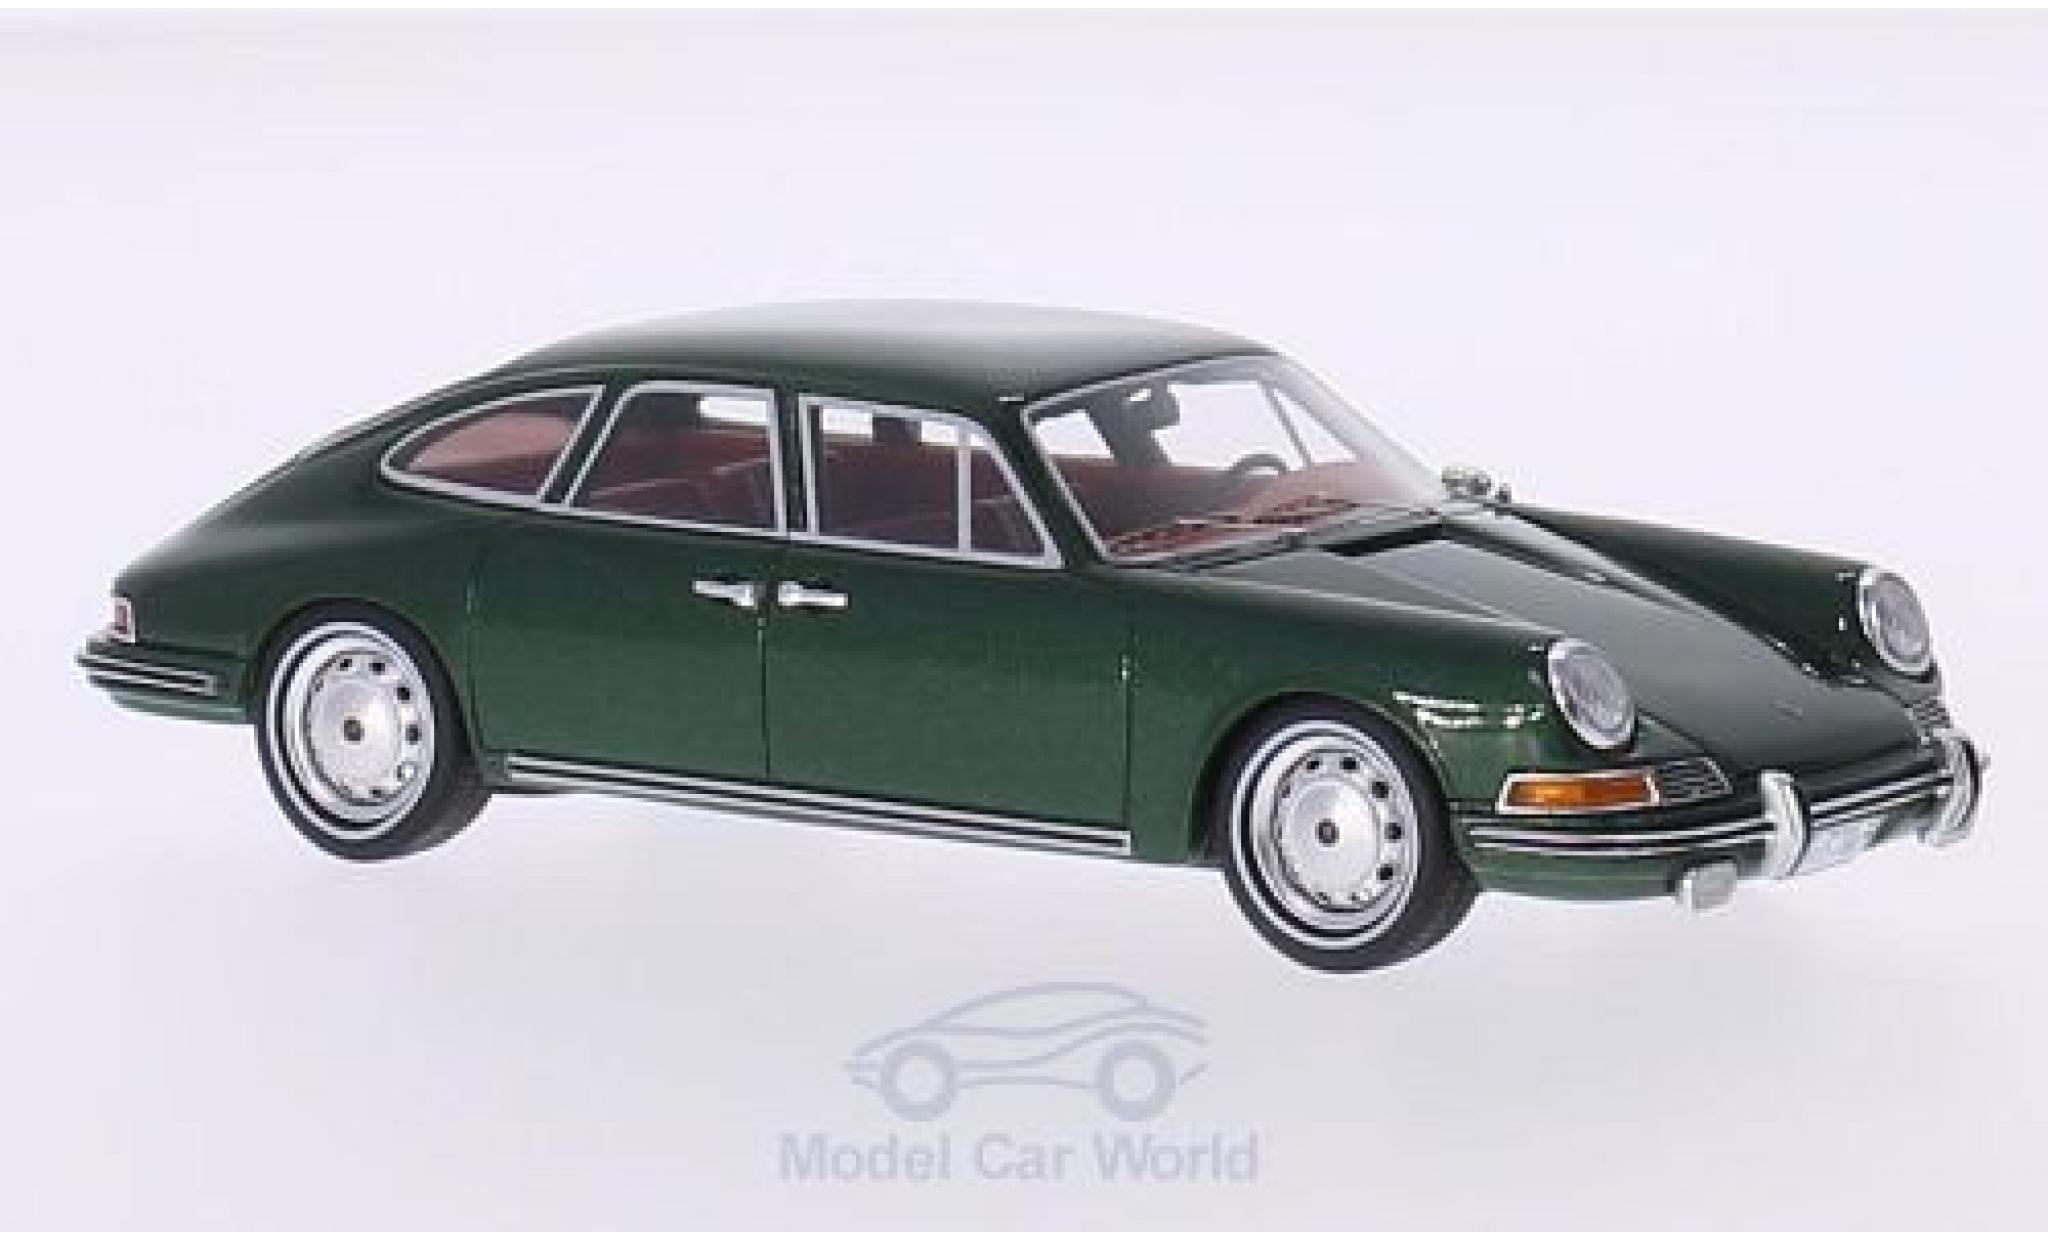 Porsche 911 SC 1/43 BoS Models S Troutman & Barnes verte 1967 4-Door Sedan